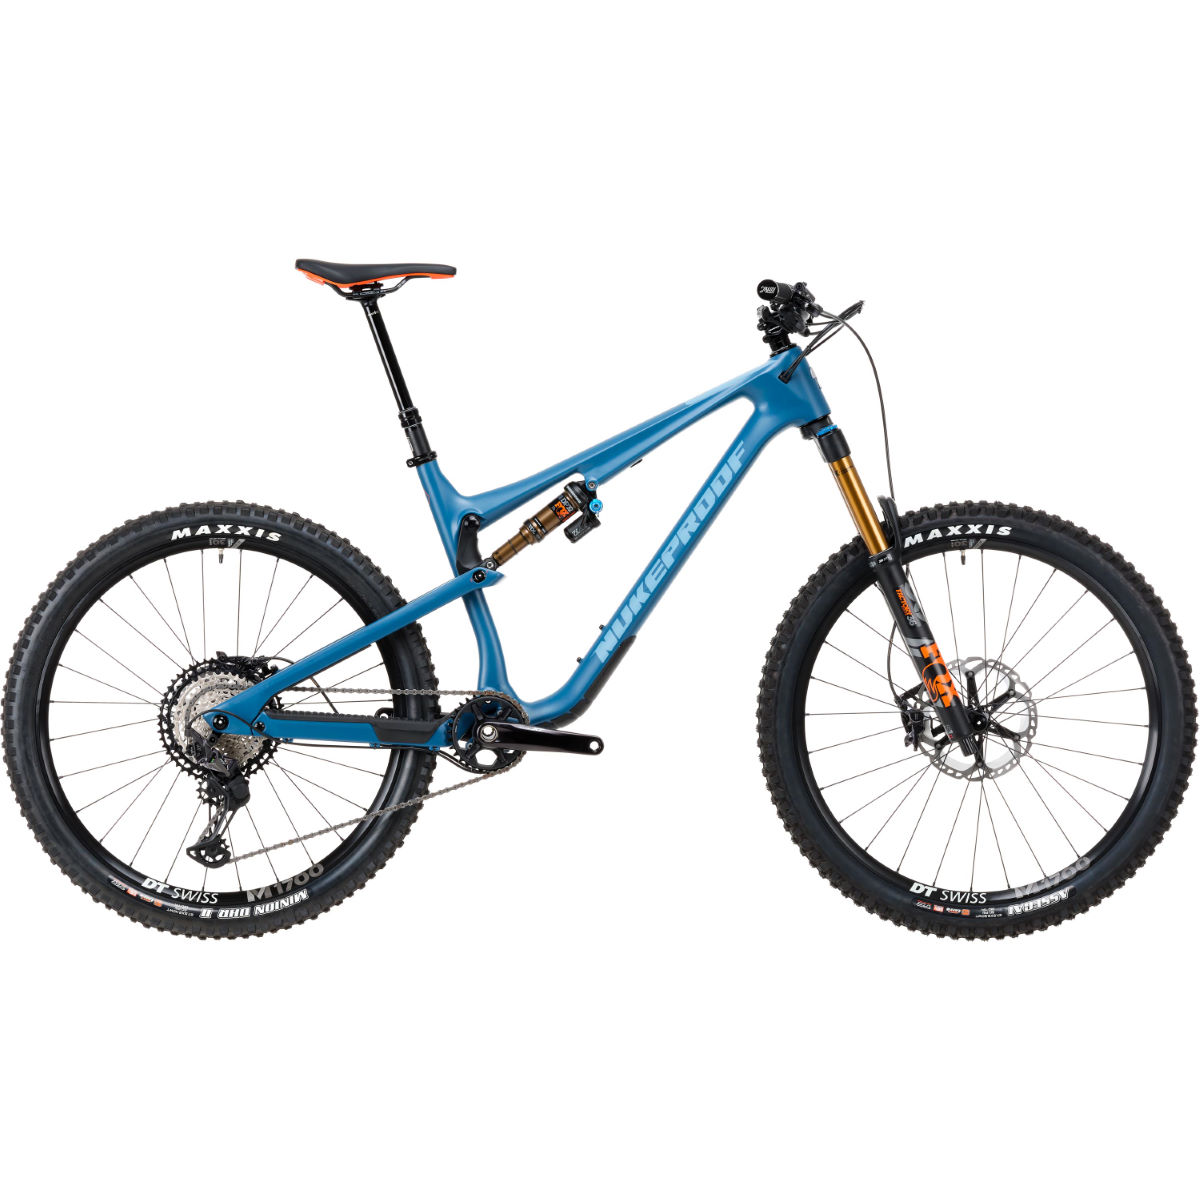 Nukeproof Nukeproof Reactor 275 Factory Carbon Bike (XT - 2020)   Full Suspension Mountain Bikes